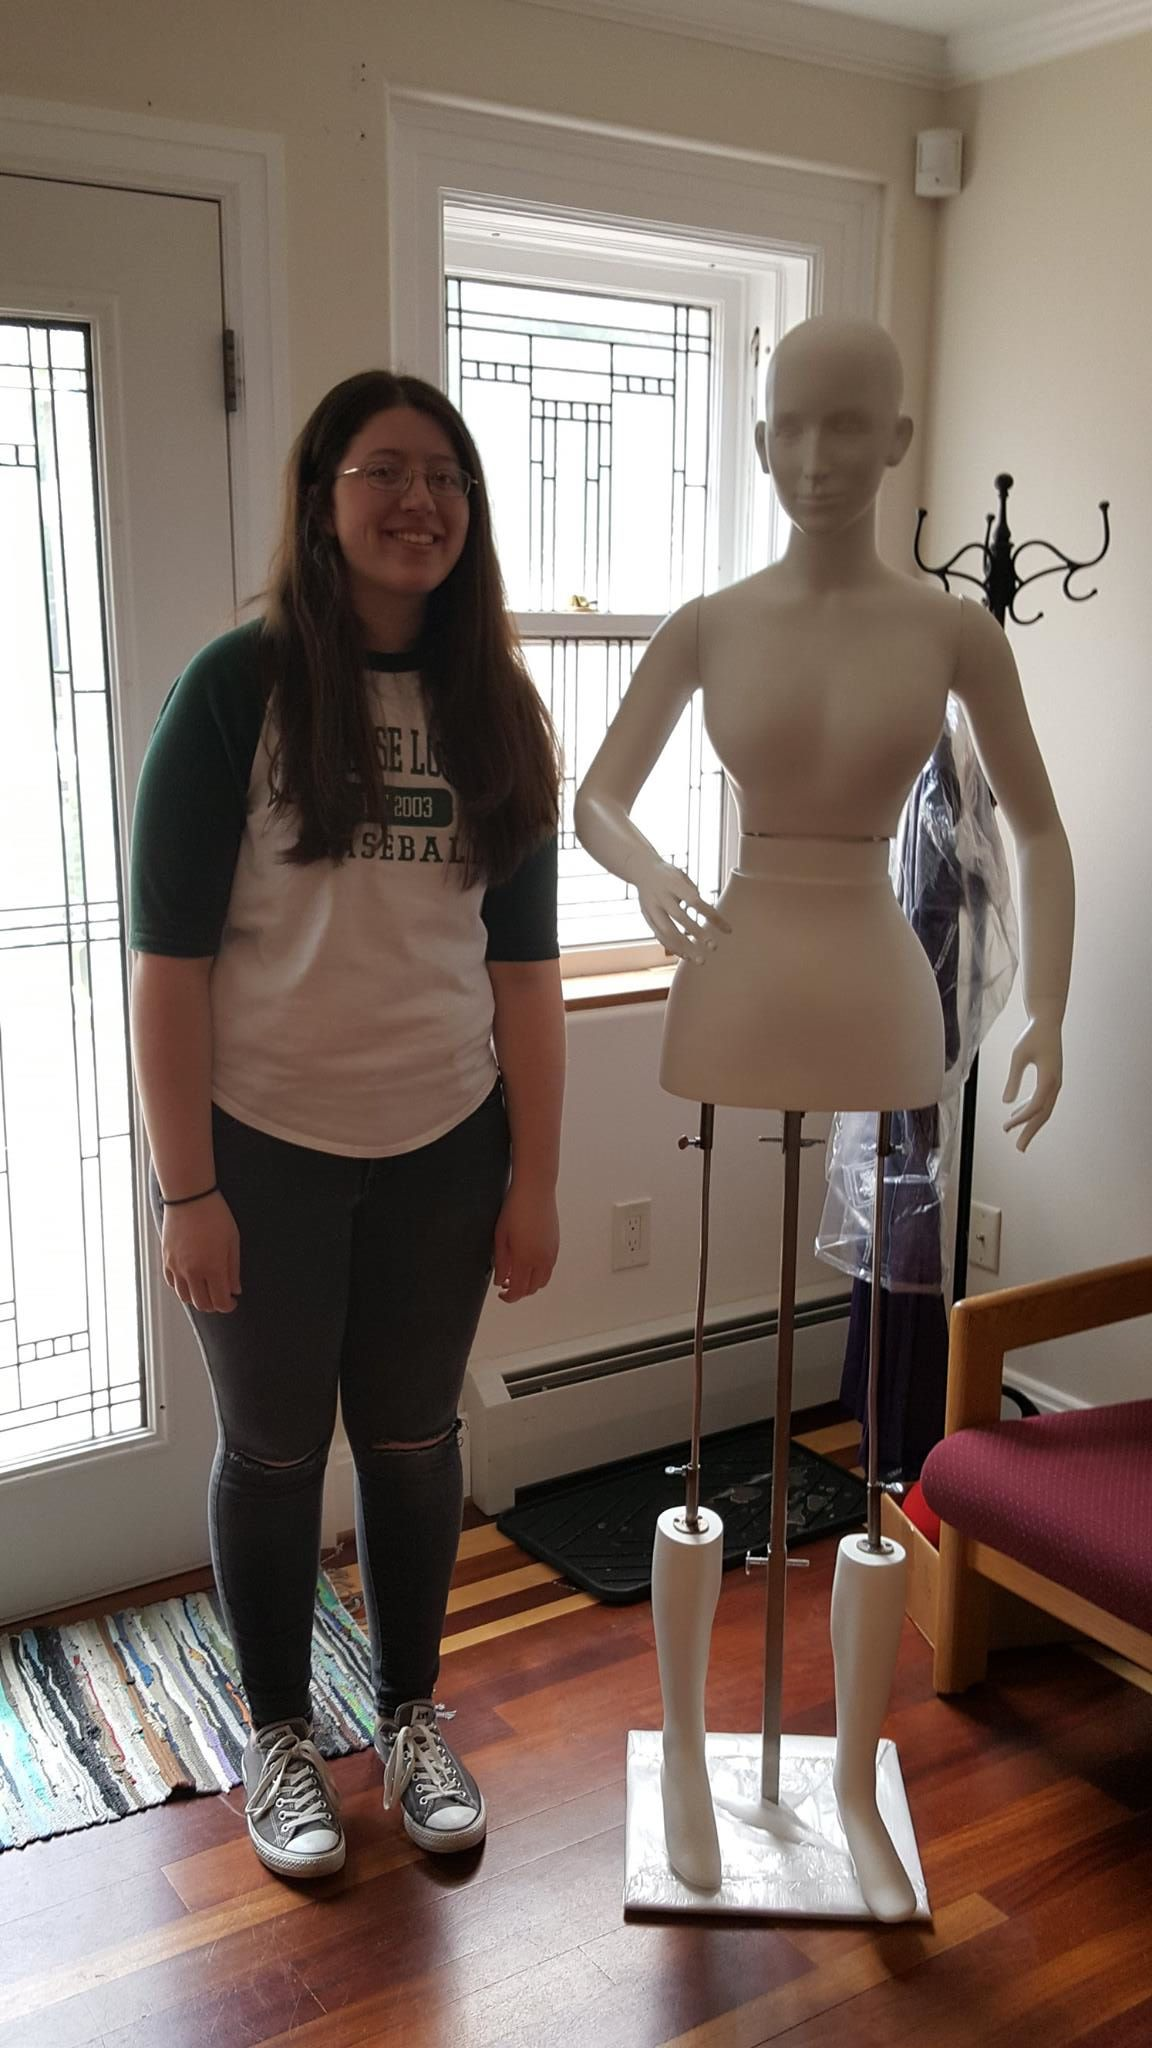 Me with our new mannequin, Coppélia, whom we put together during one of my first days as an intern.